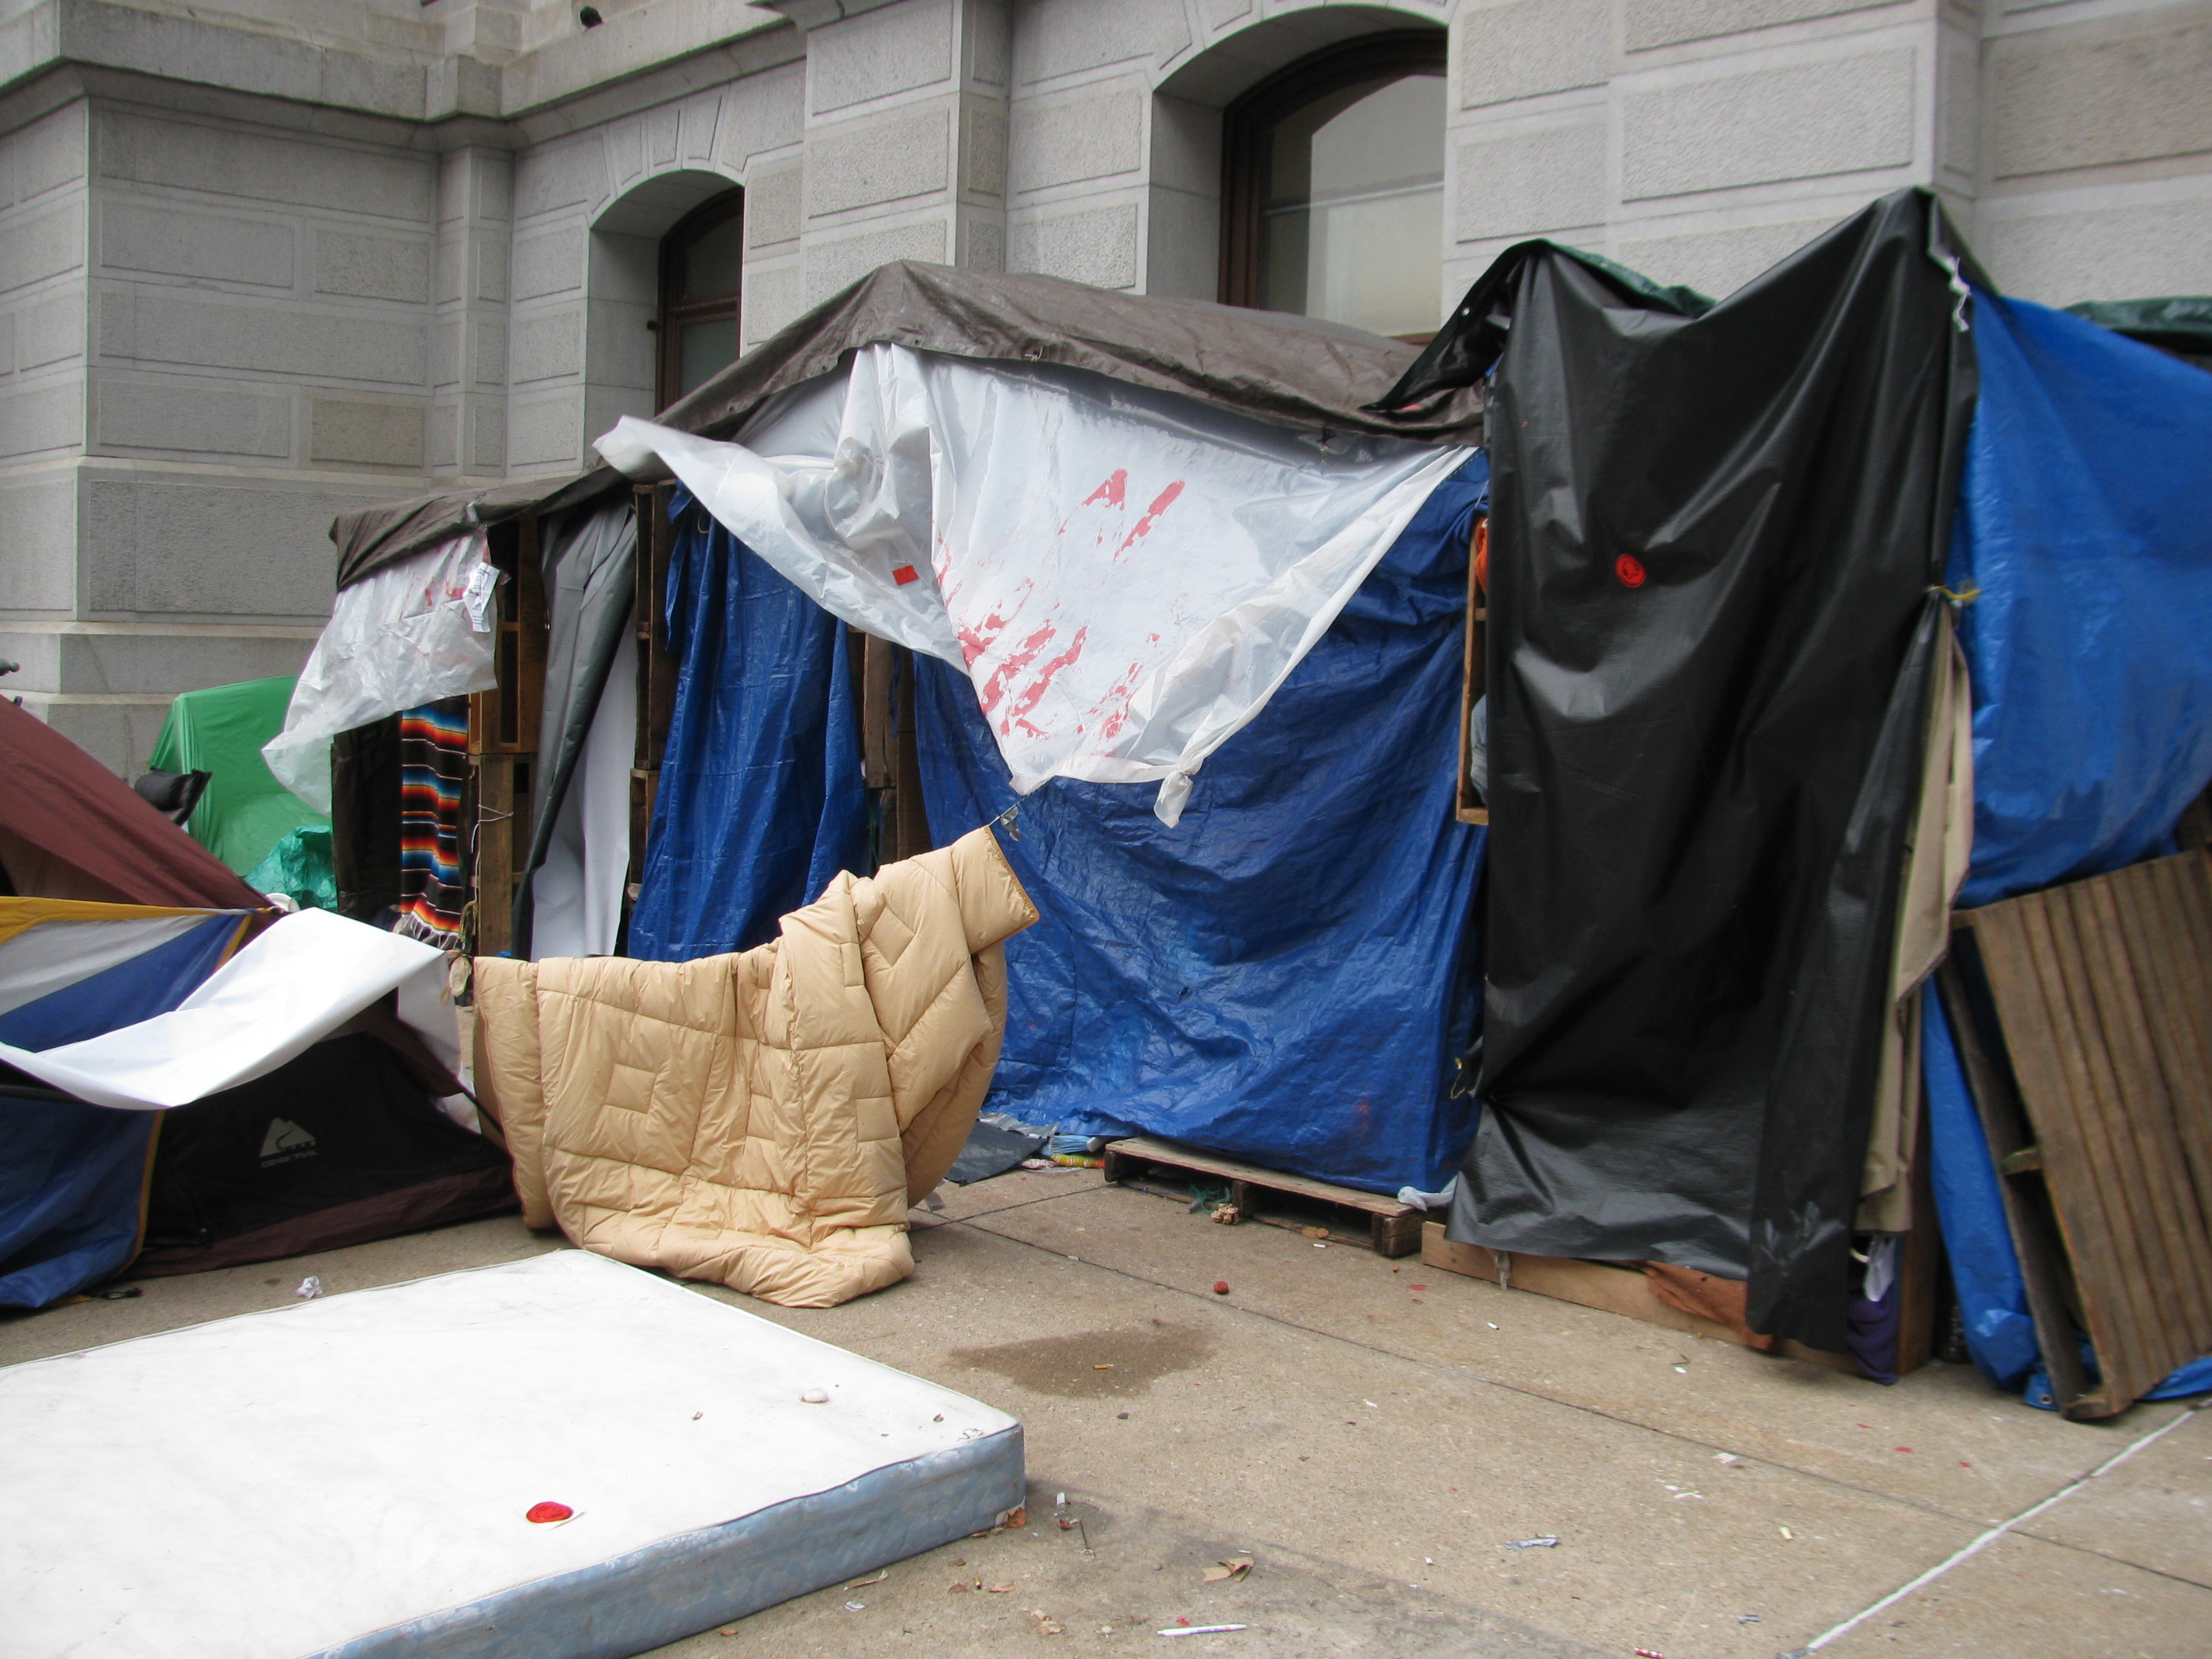 The Homeless Tent. & Occupy Philly As Spontaneous Urbanism Part III | Hidden City ...